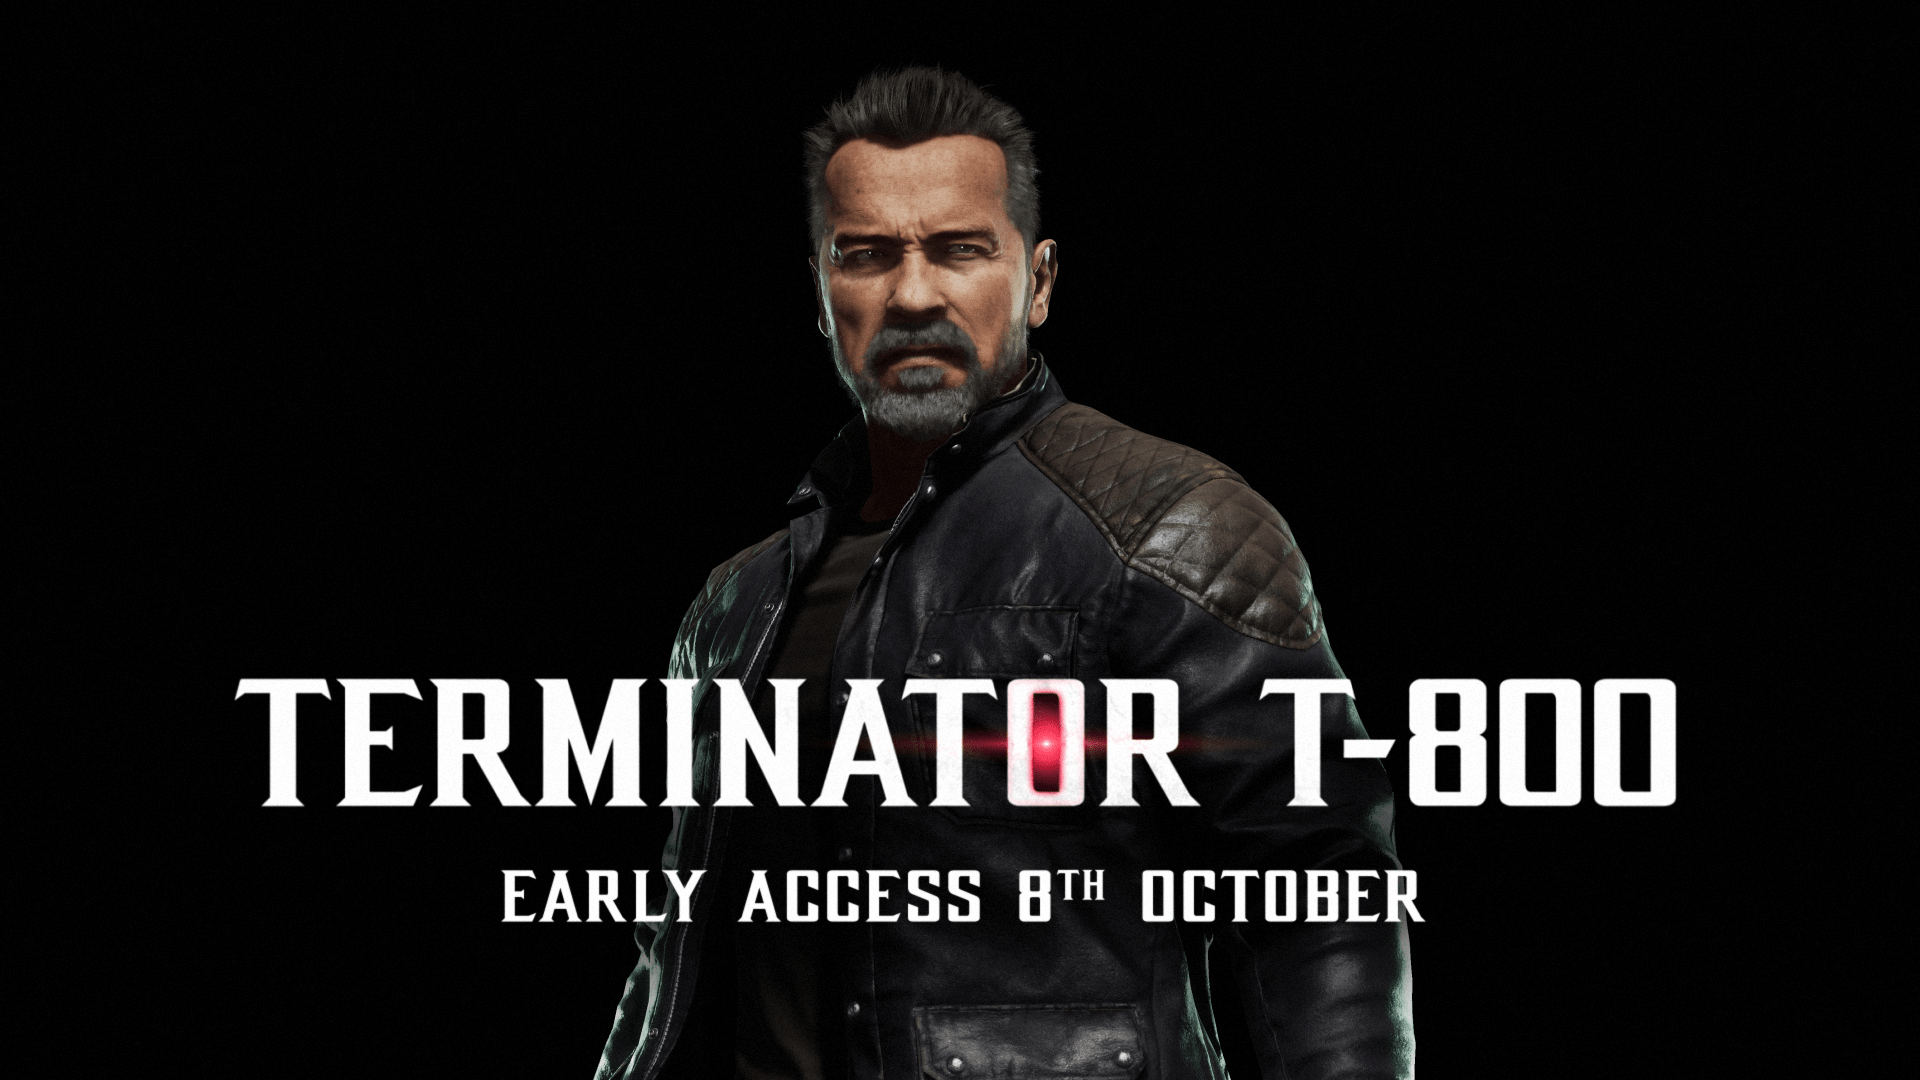 New Mortal Kombat 11 Trailer Showcases The Terminator T-800 – Available Oct 8th As Part Of The Kombat Pack